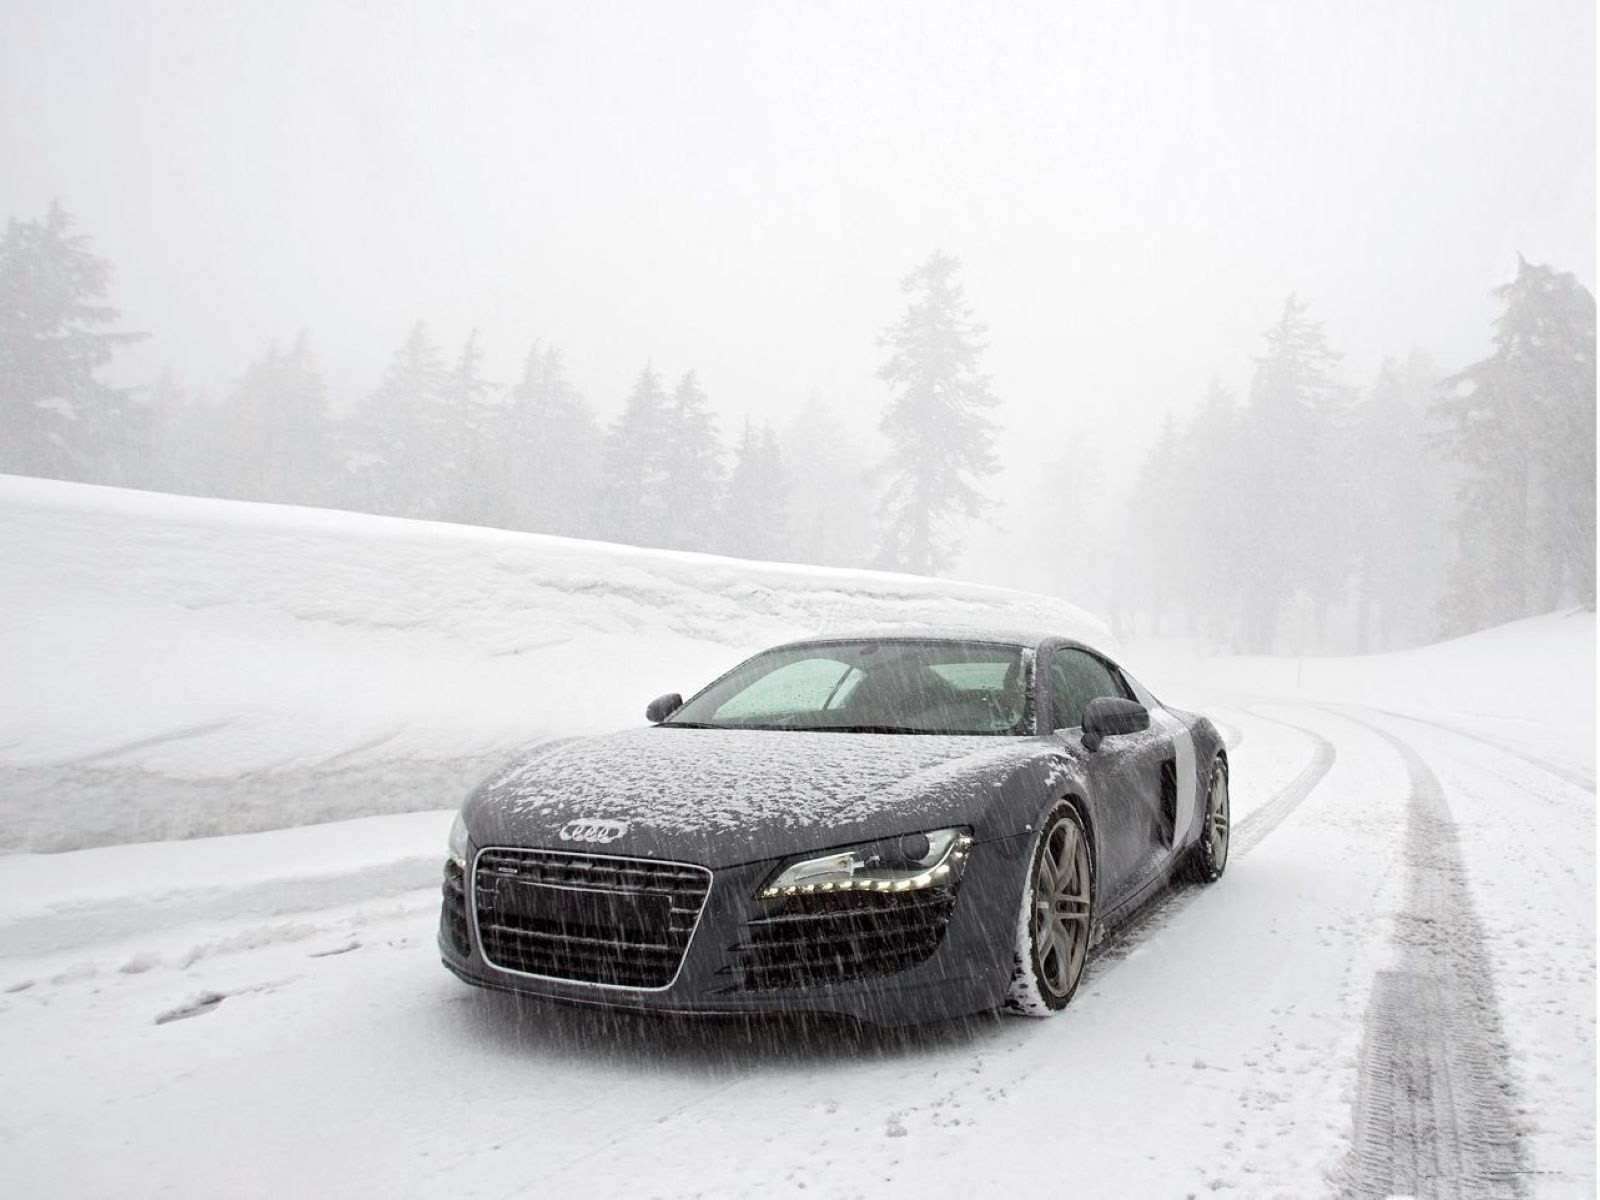 1080p Car Wallpaper Pack Cars In The Snow Wallpapers High Quality Download Free